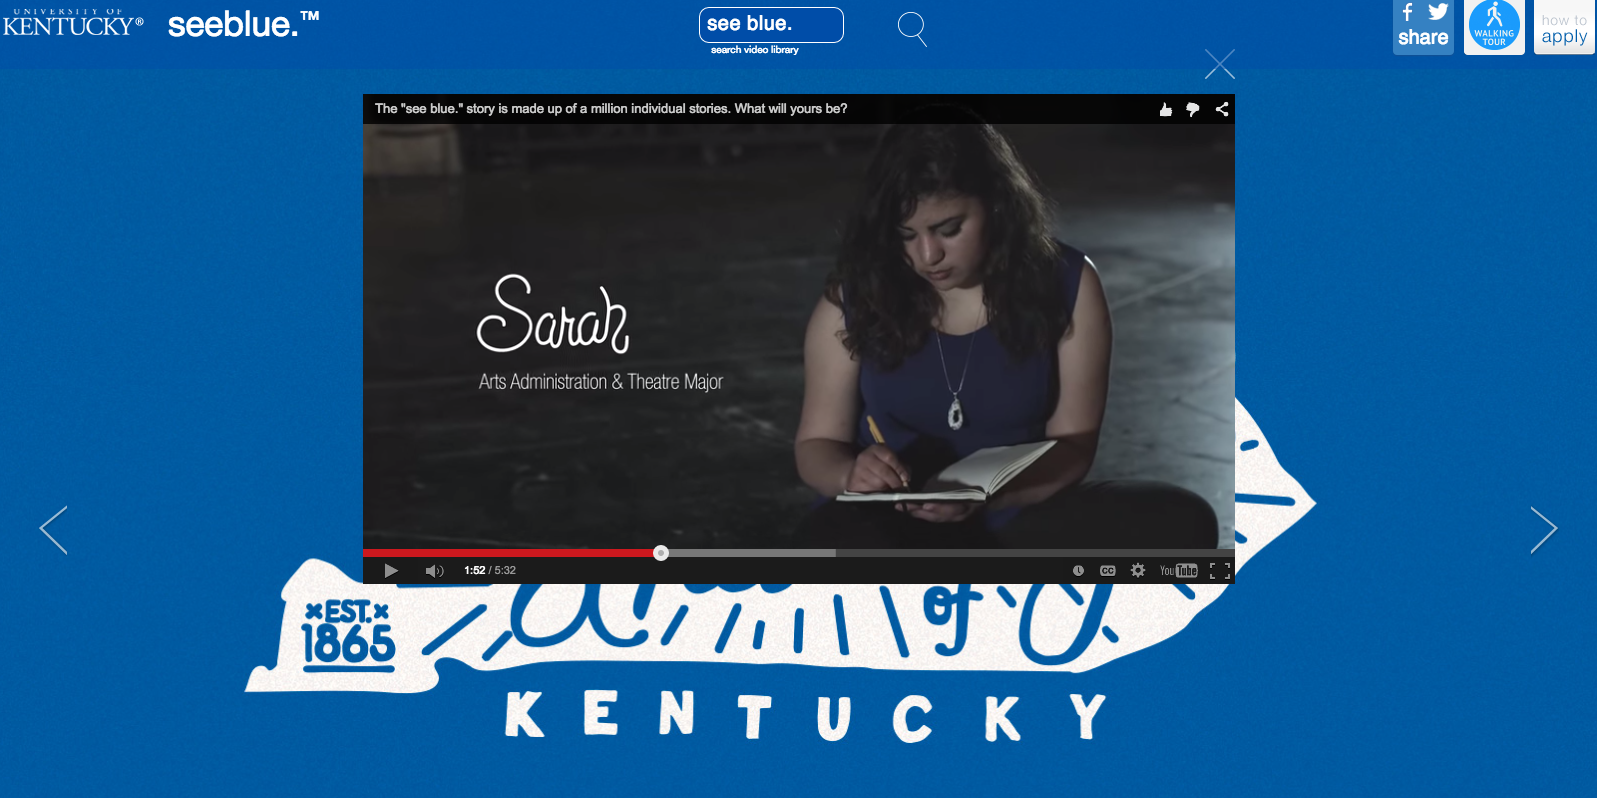 Kentucky College YouTube Social Media Campaign